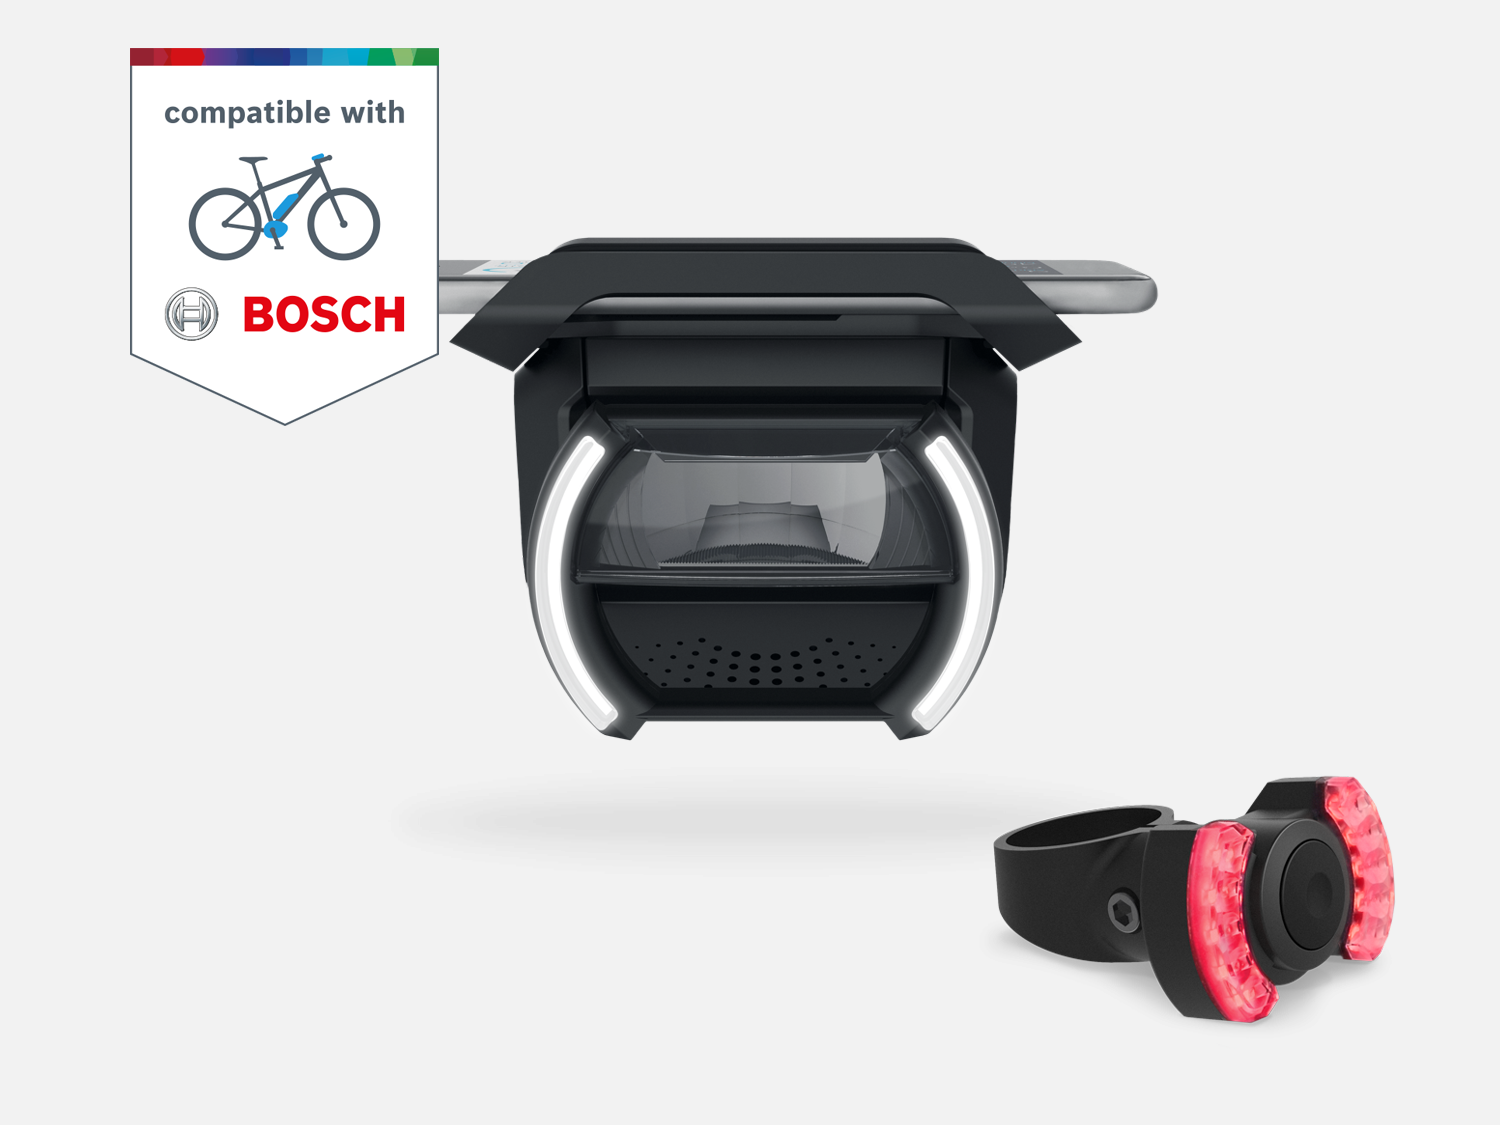 stage-cobi_plus-bosch-universal_mount_1500x1125_1-bosch.png